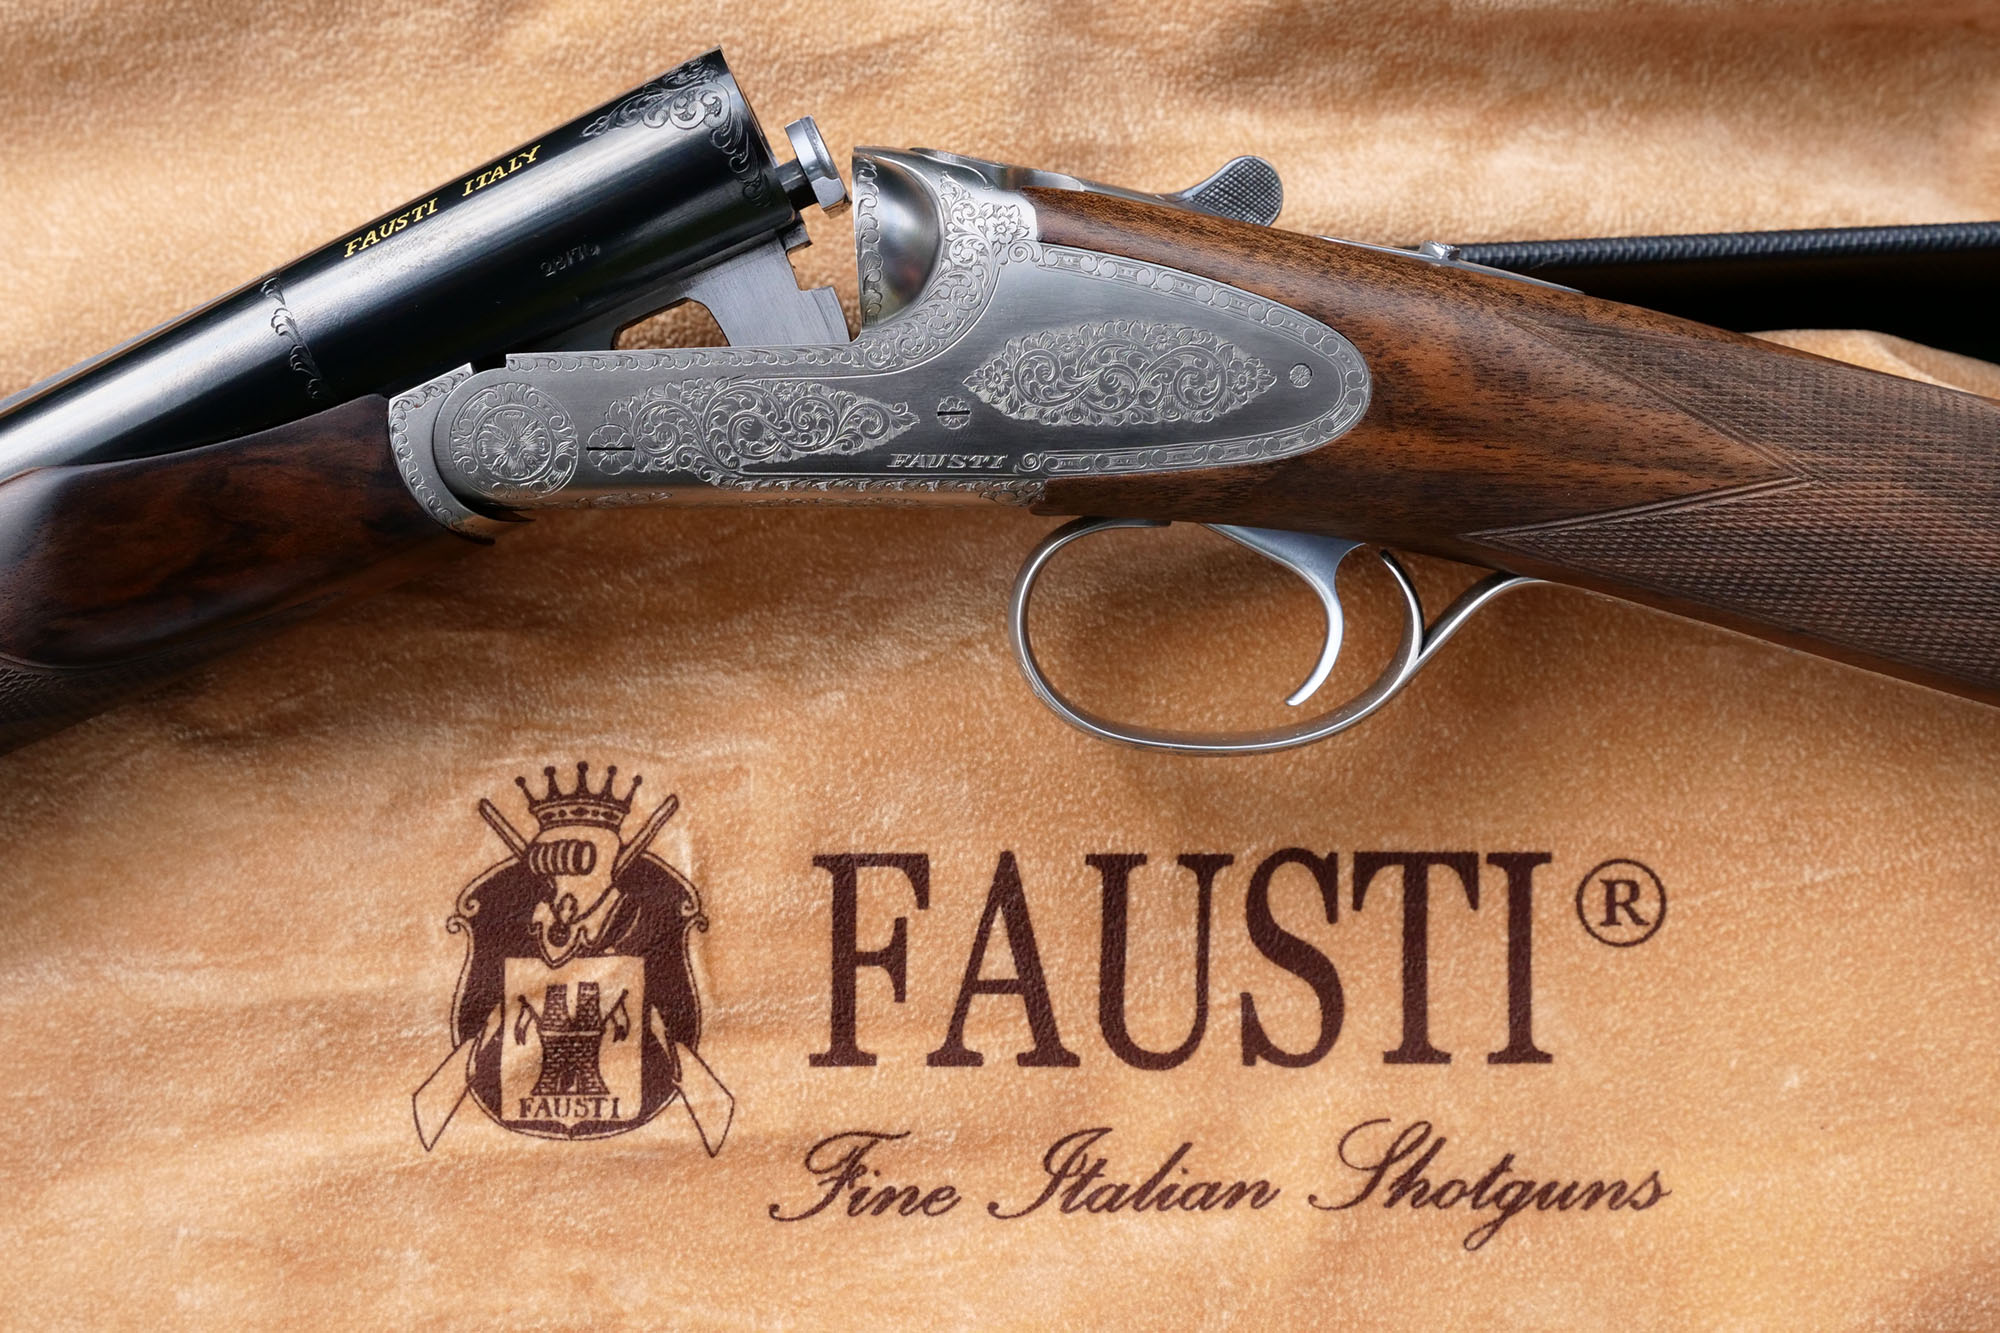 Fausti DEA Luxury  side-by-side, right side